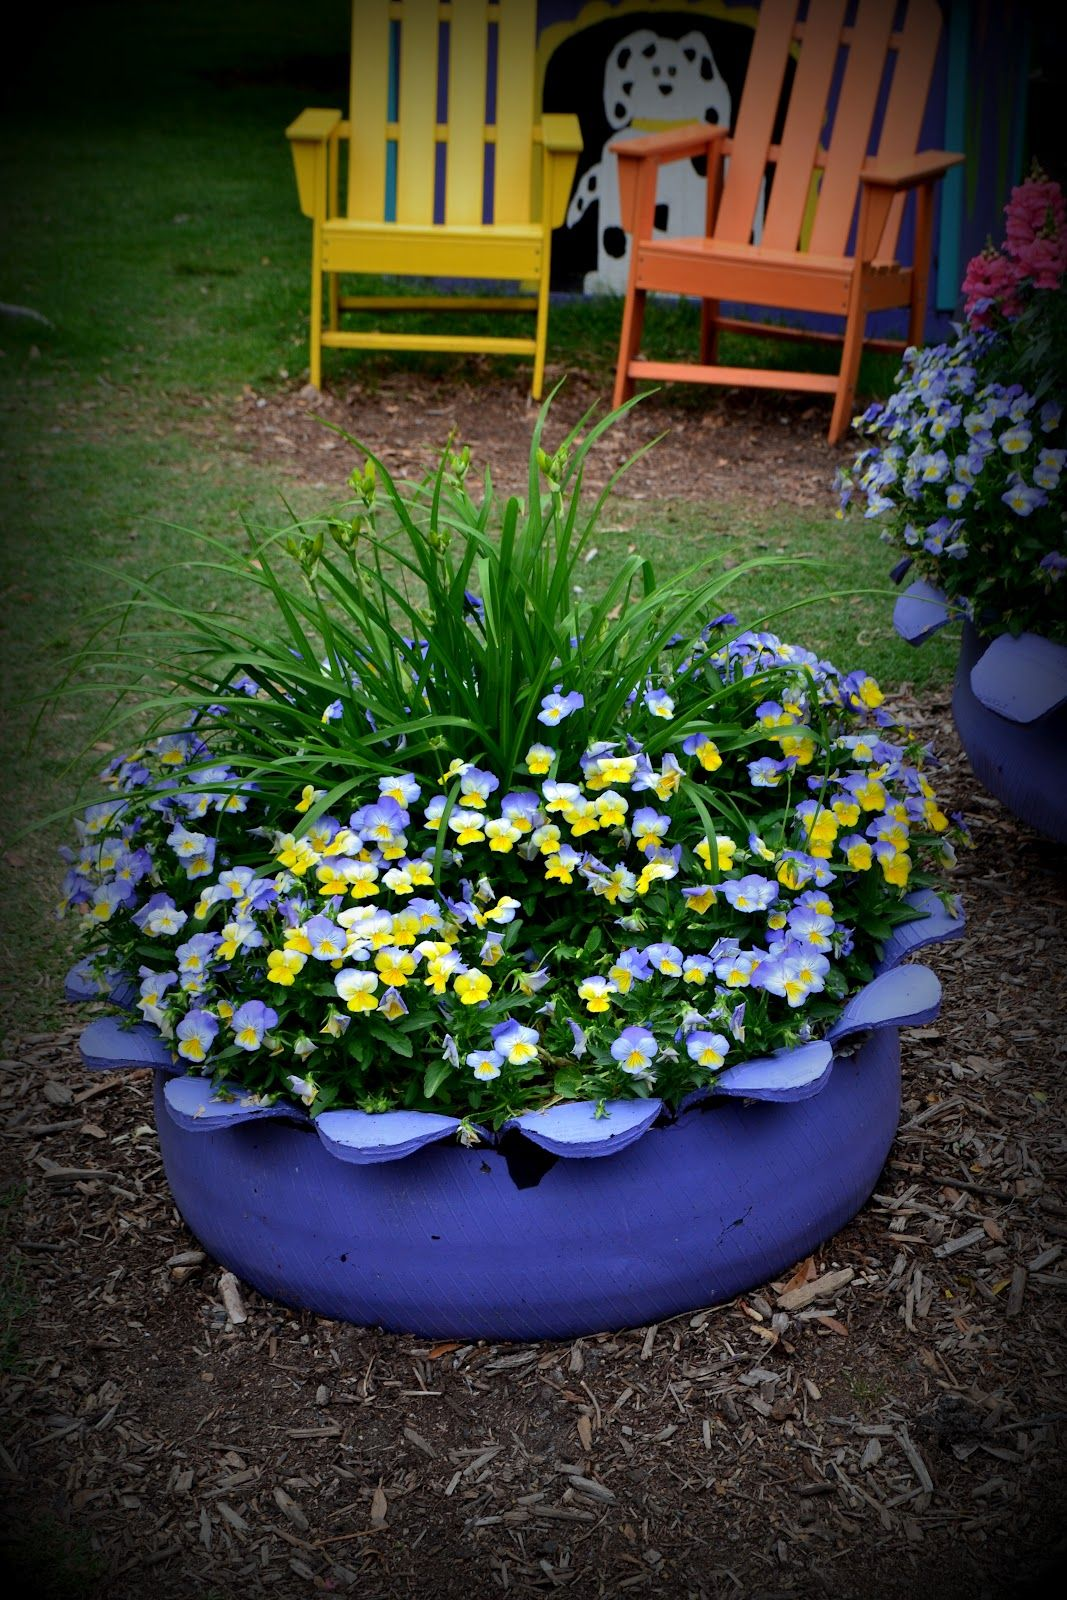 modernistic mama: zoo garden pictures: painted tire flower pot